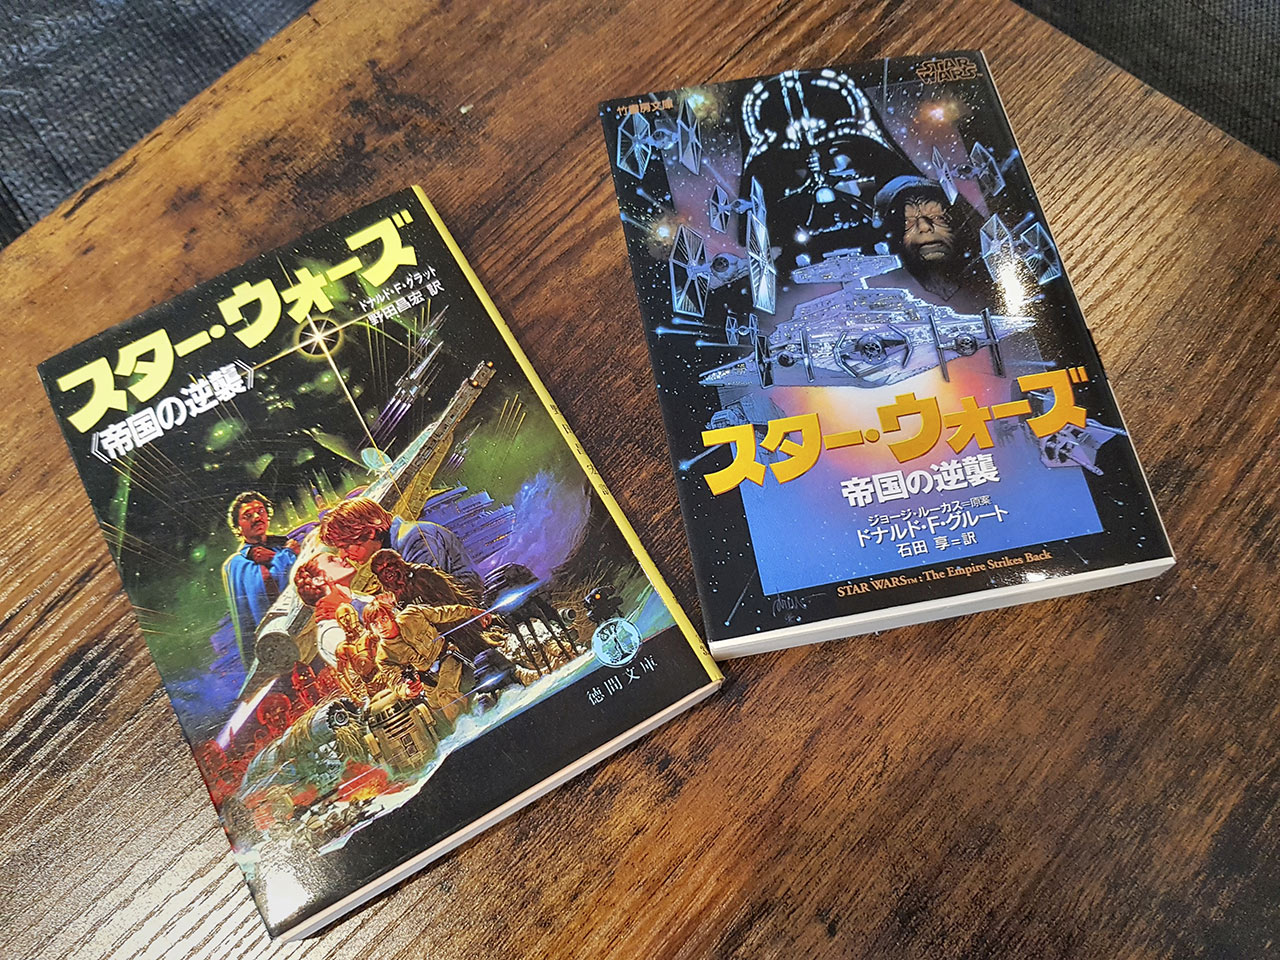 Japanese editions of The Empire Strikes Back novelizations